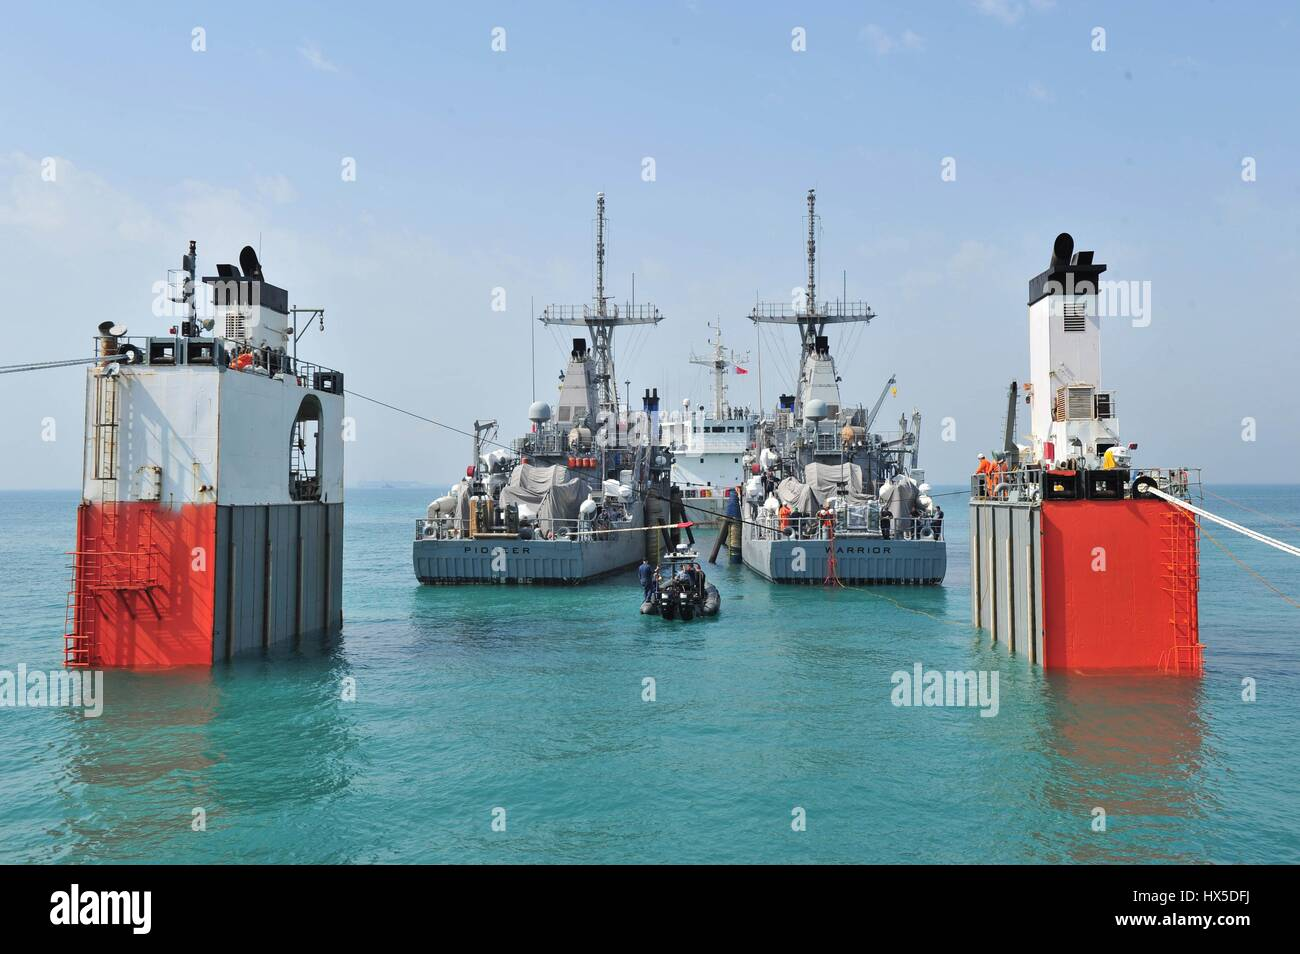 In calm turquoise waters two mine countermeasure ships USS Pioneer and USS Warrior prepare for transport behind Stock Photo